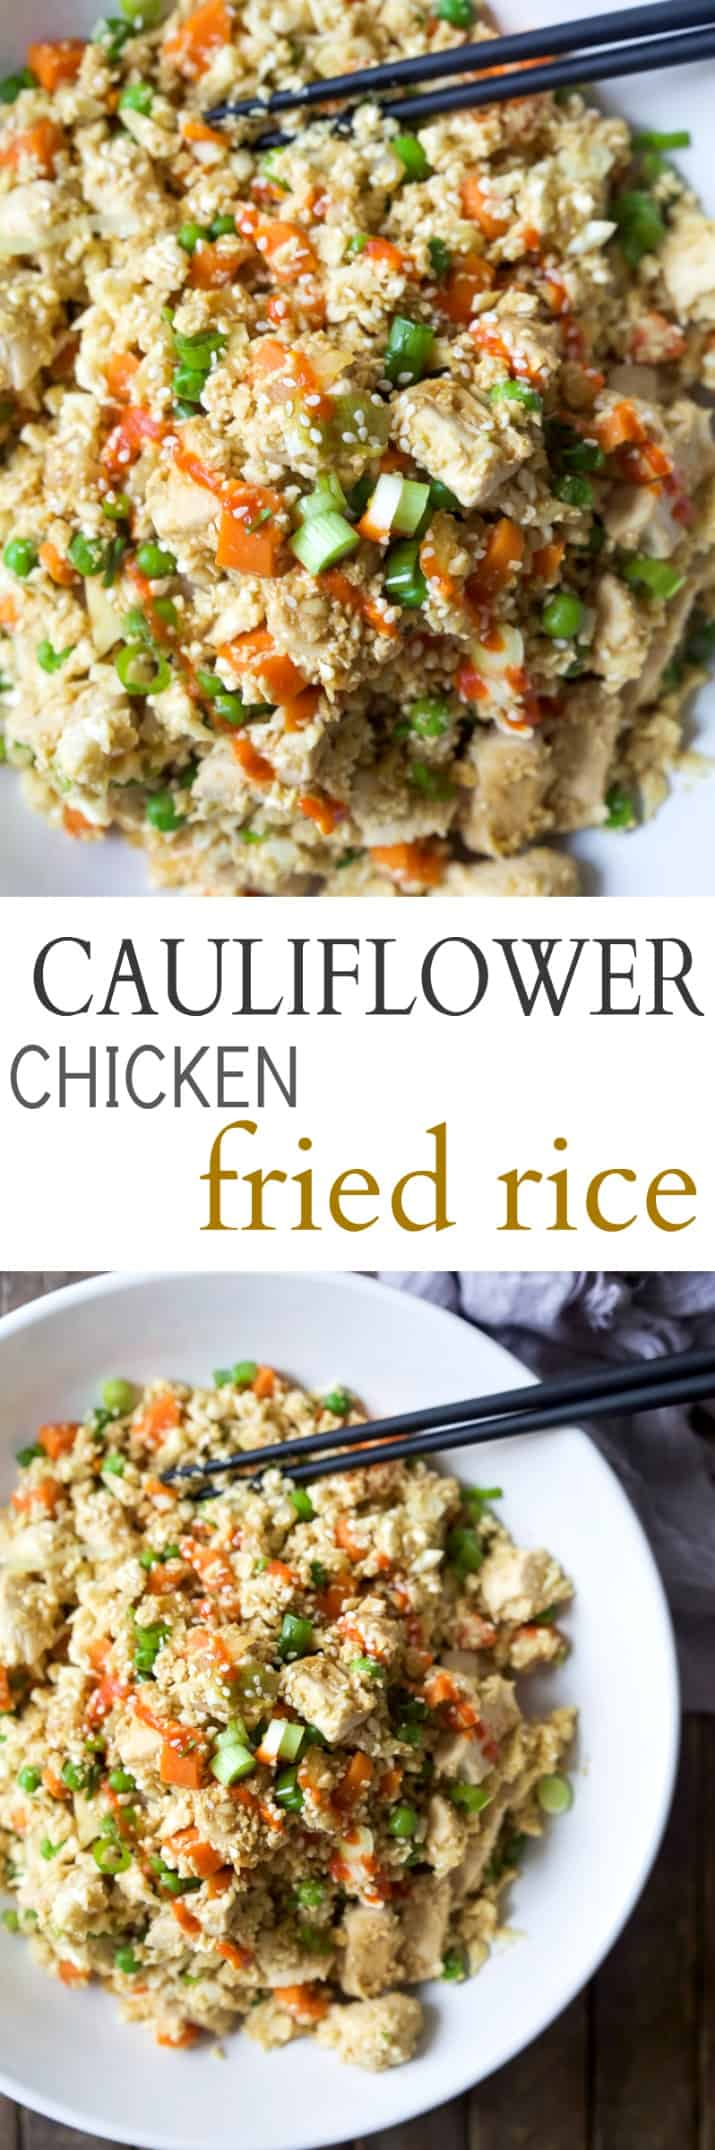 Easy 15 Minute Cauliflower Chicken Fried Rice that's way better than takeout and tons healthier for you. Only 205 calories a serving! | gluten free recipes